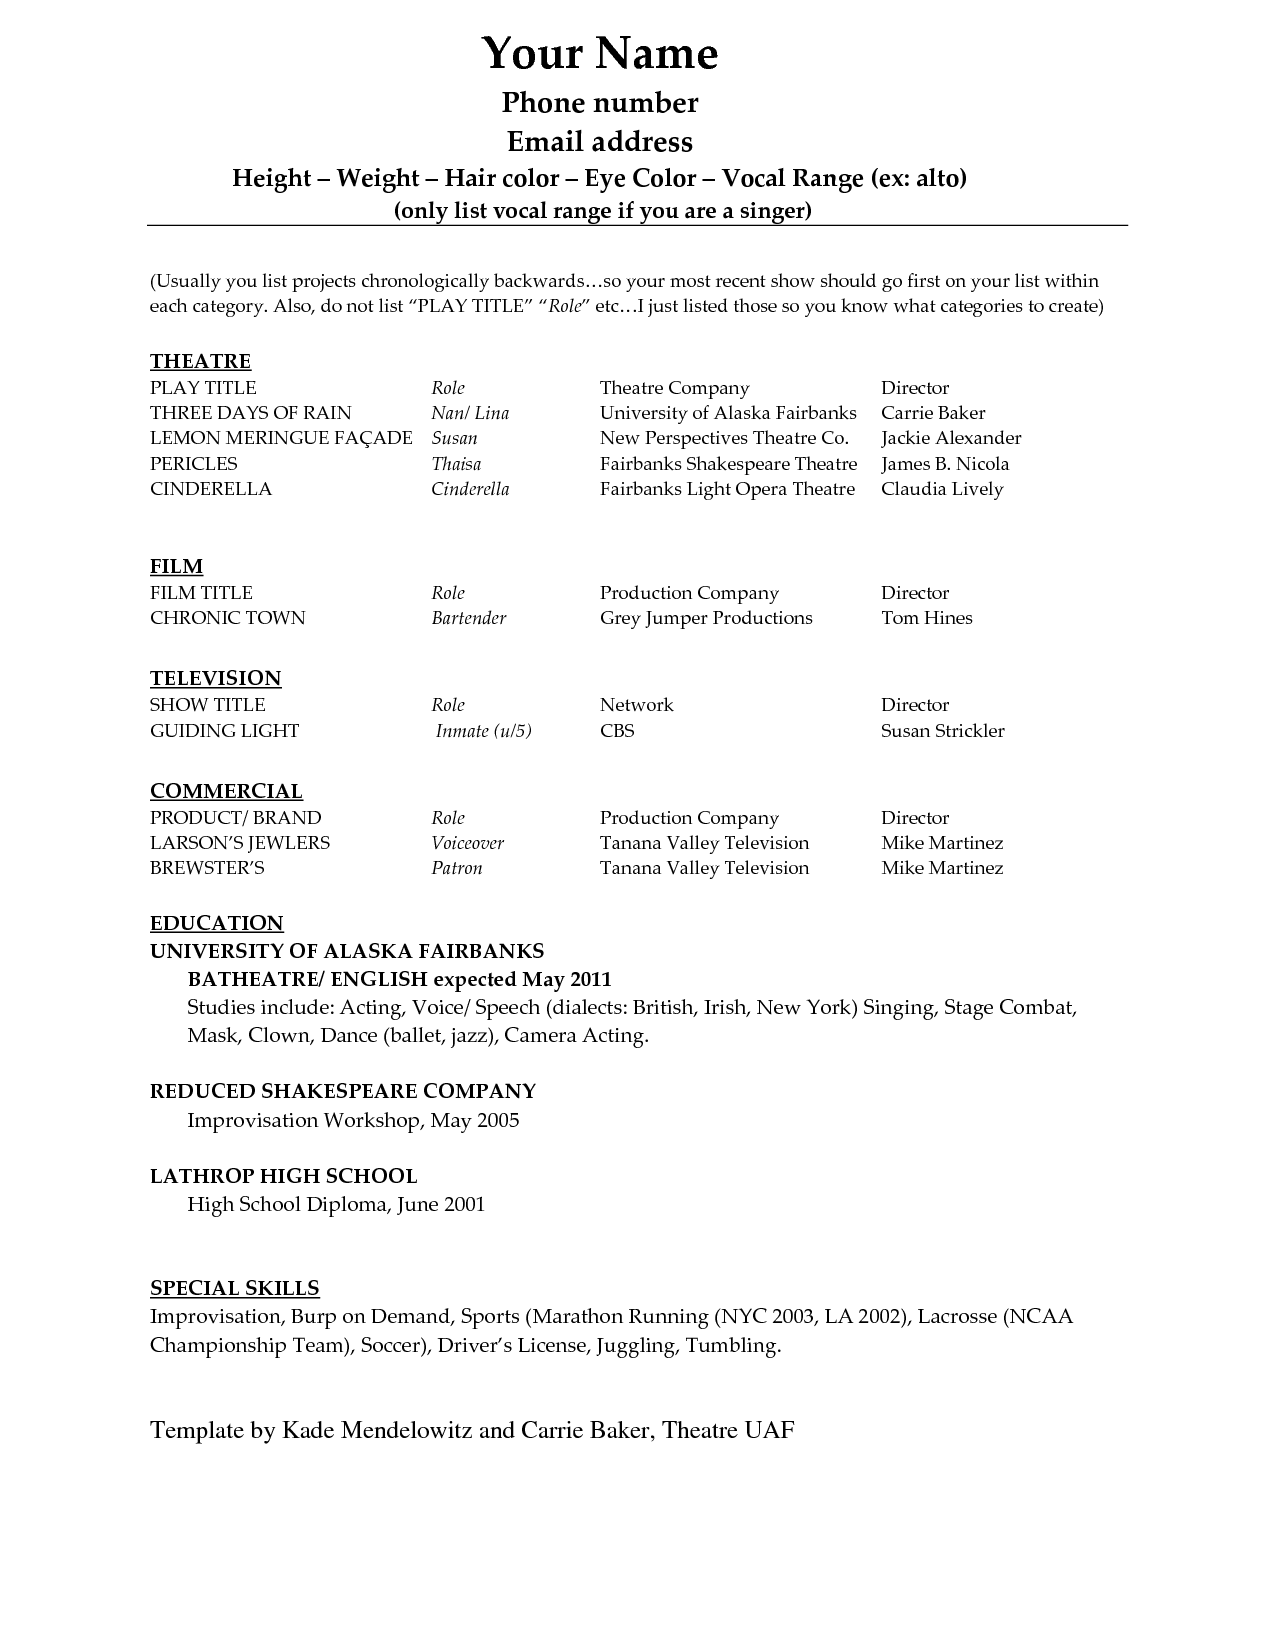 Acting resume template download free httpresumecareer acting resume template download free httpresumecareerfo yelopaper Gallery